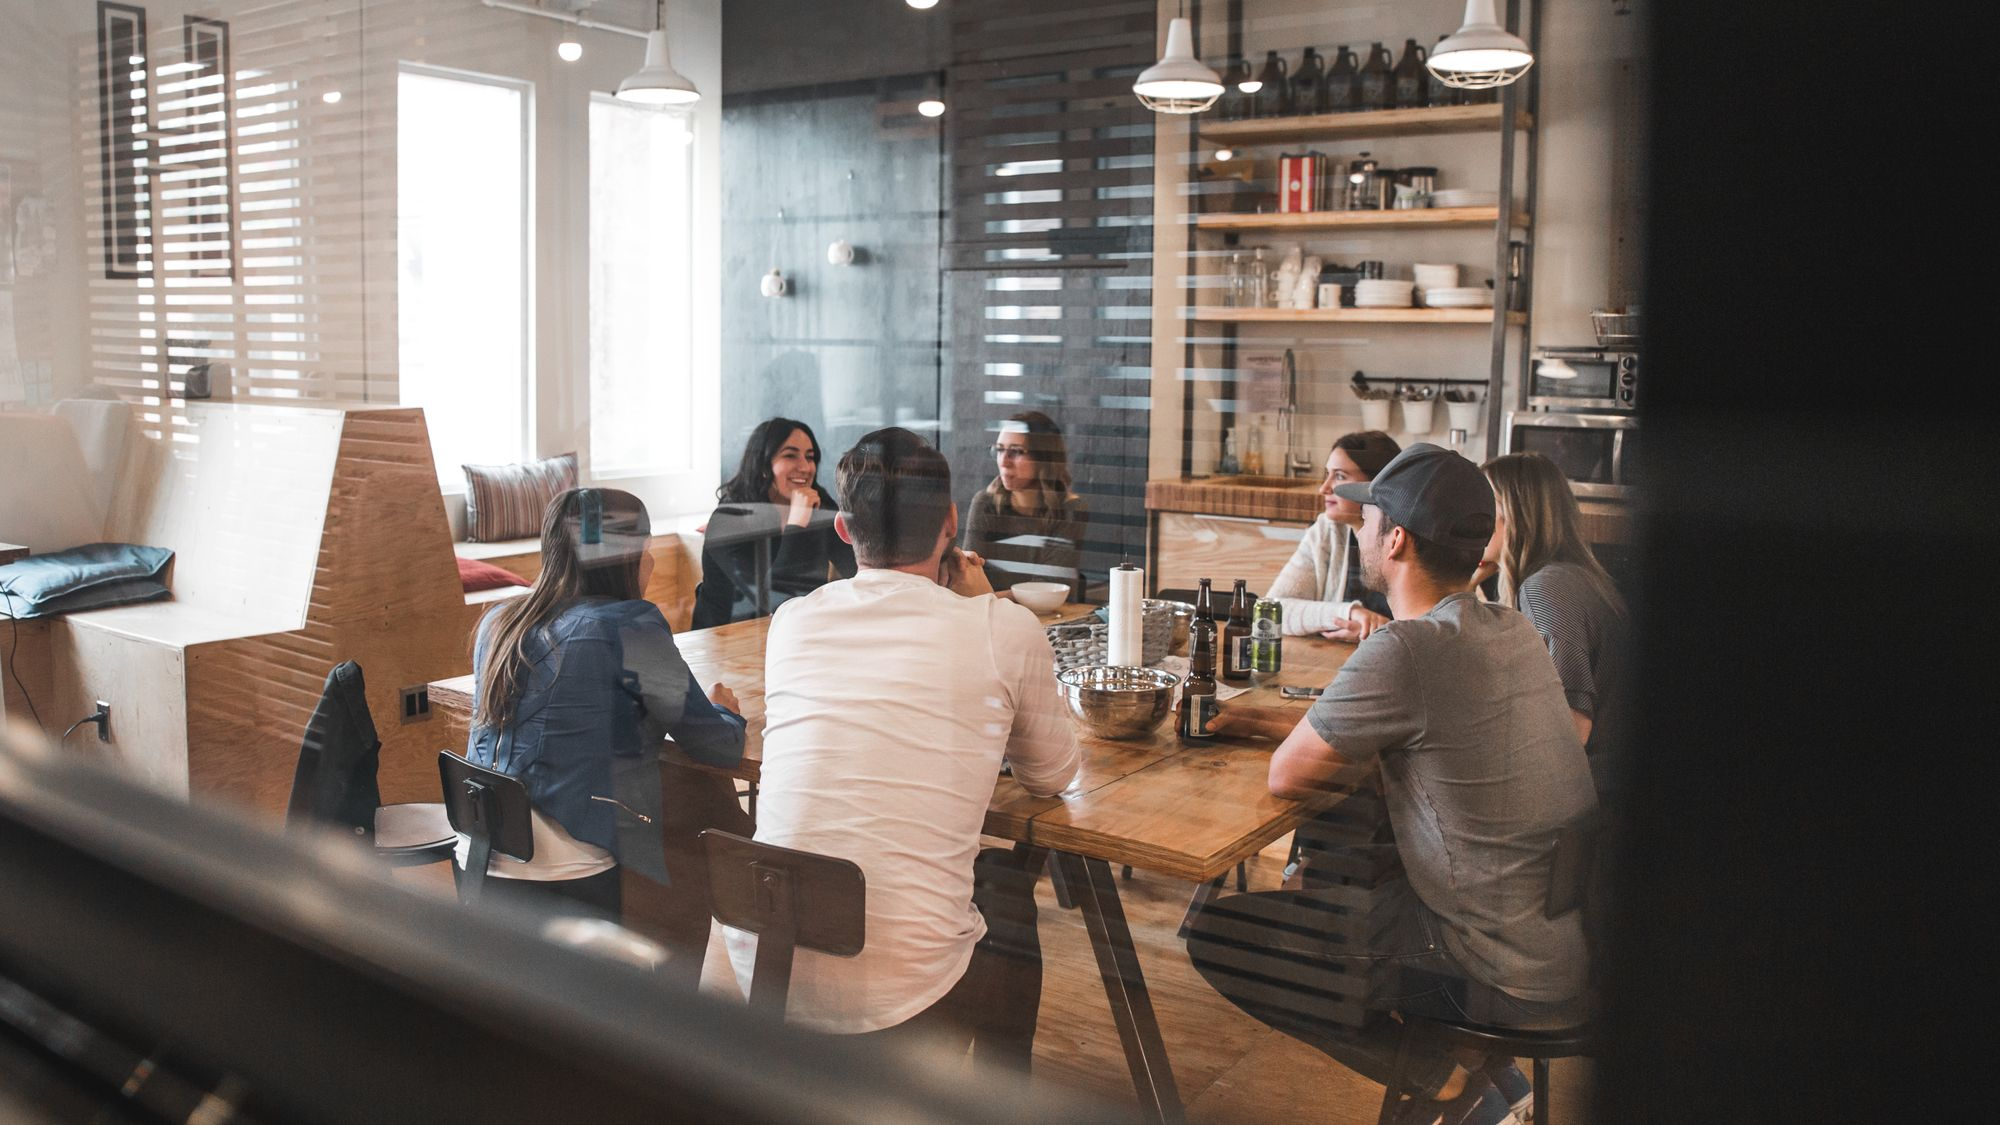 A group of people meet around a table in a restaurant, talking